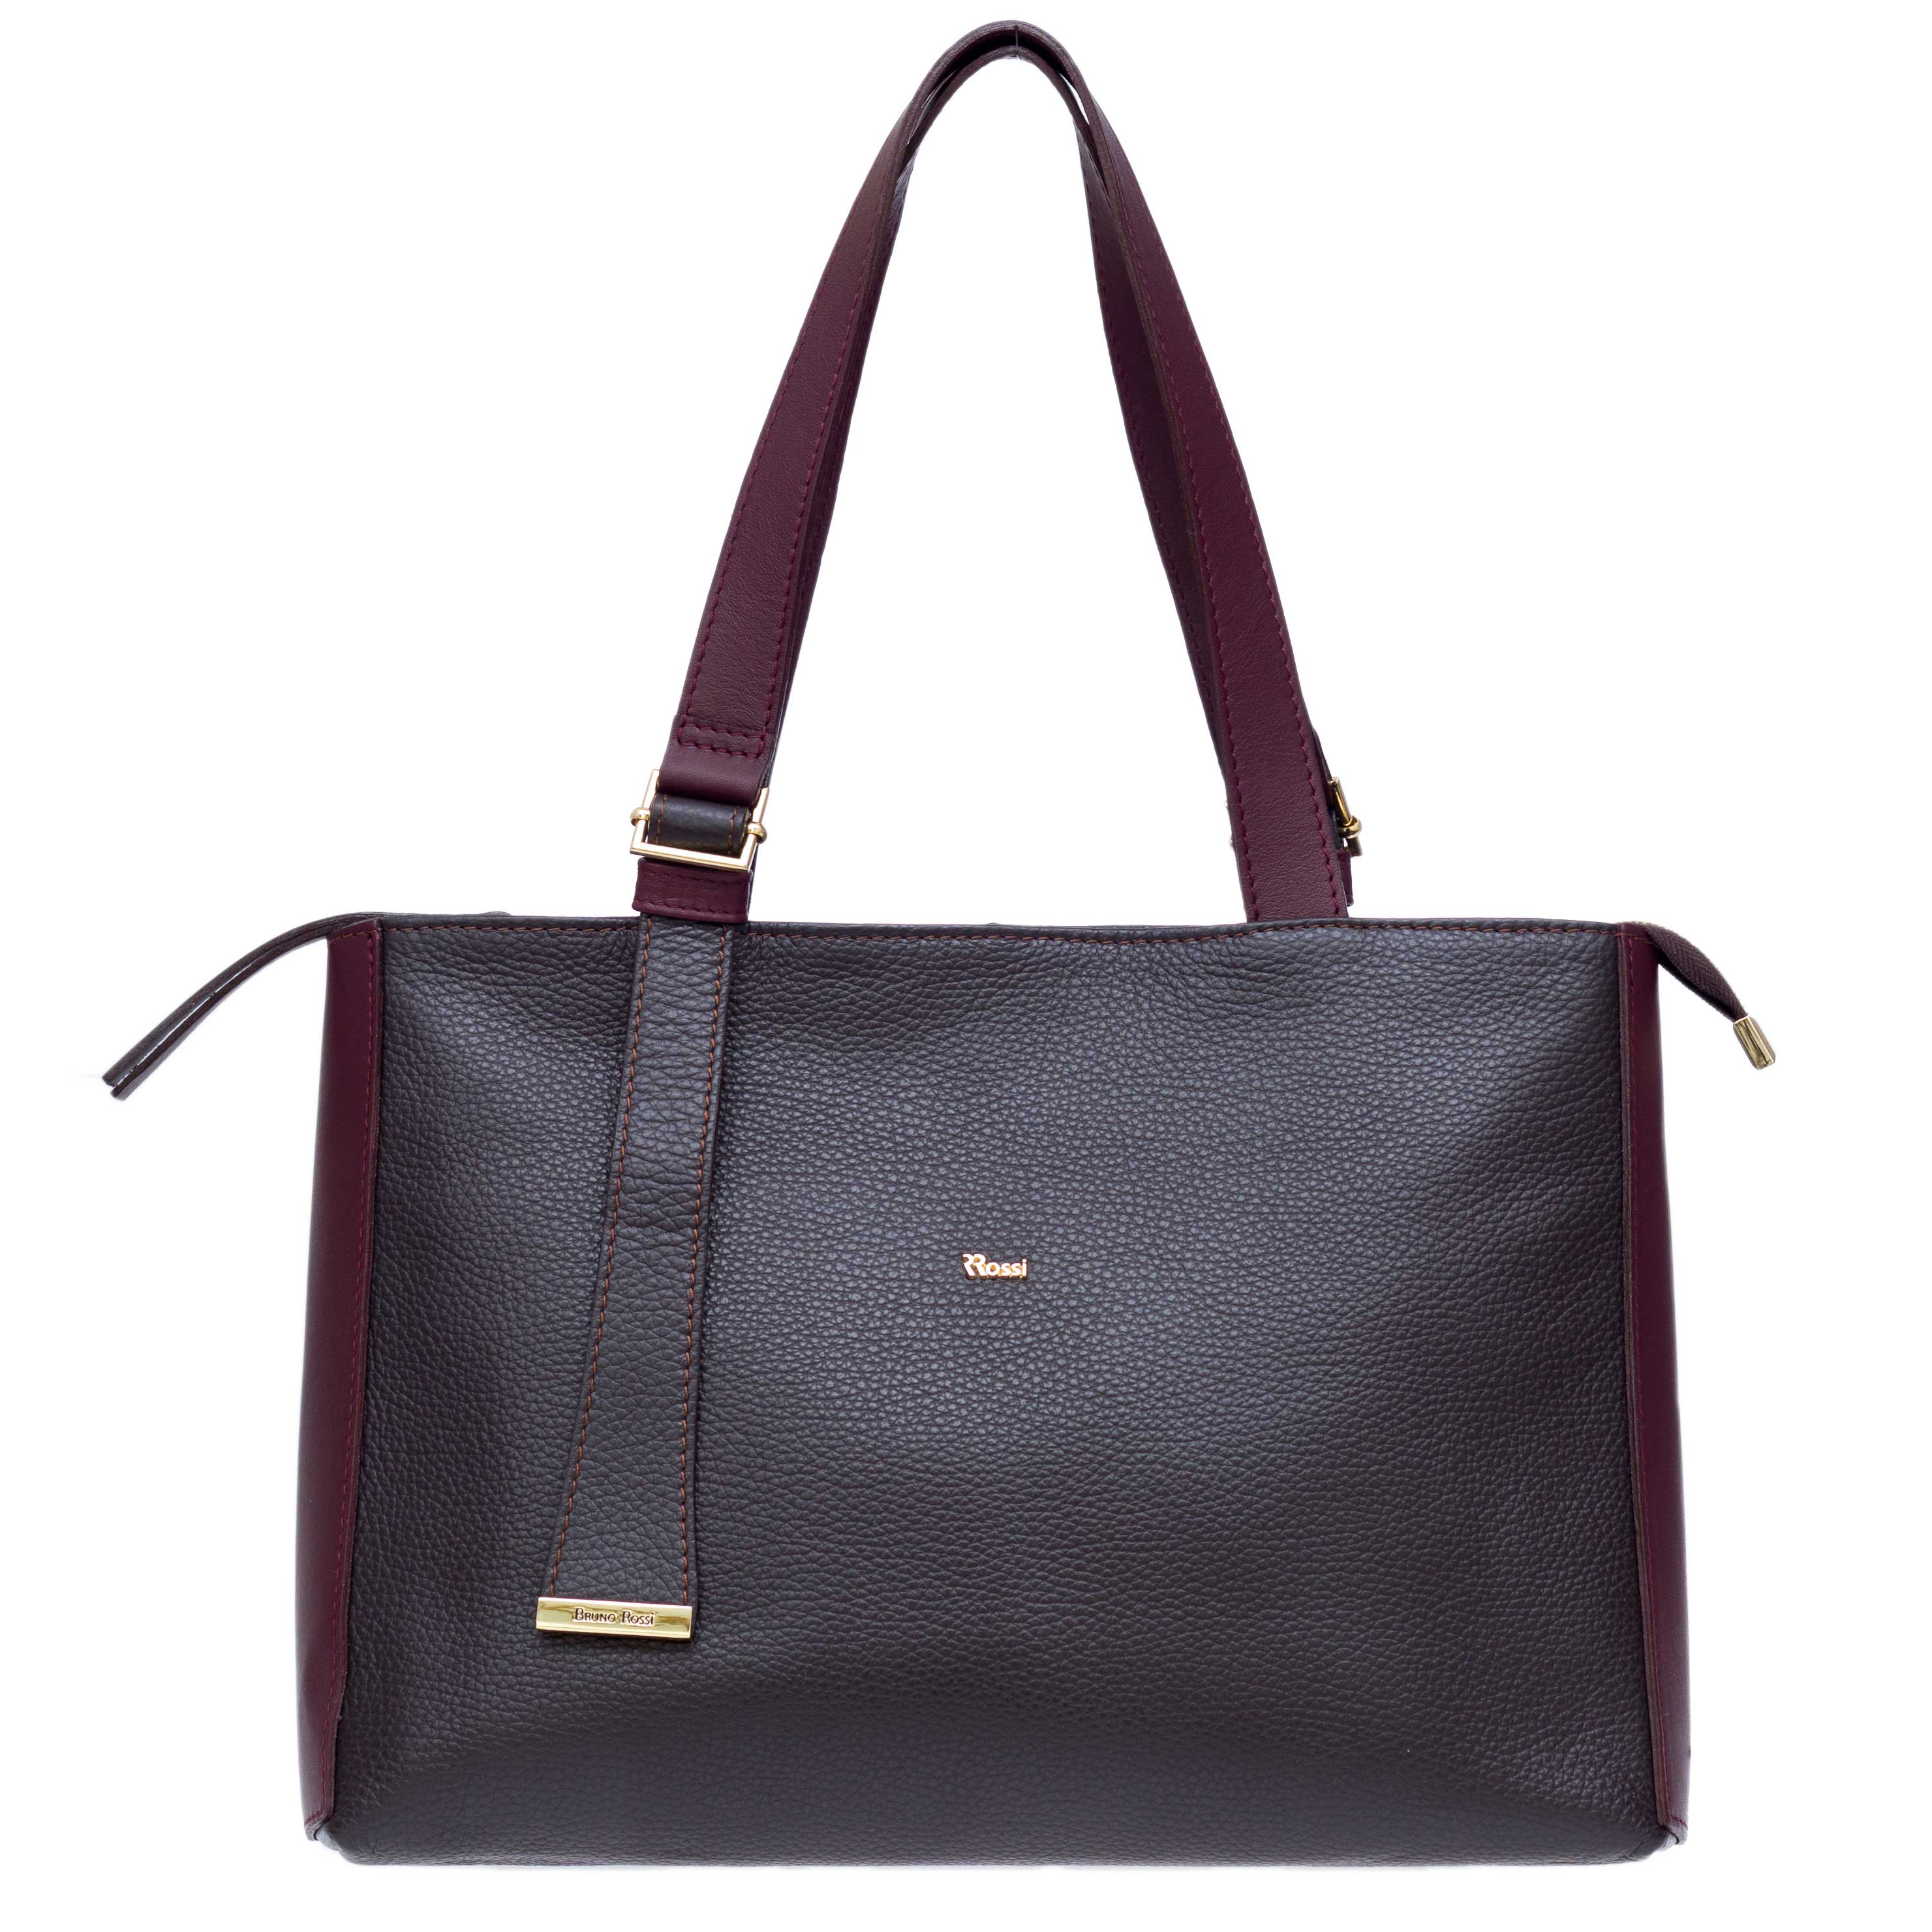 Bruno Rossi Italian Made Dark Brown Pebbled Leather Large Tote Bag